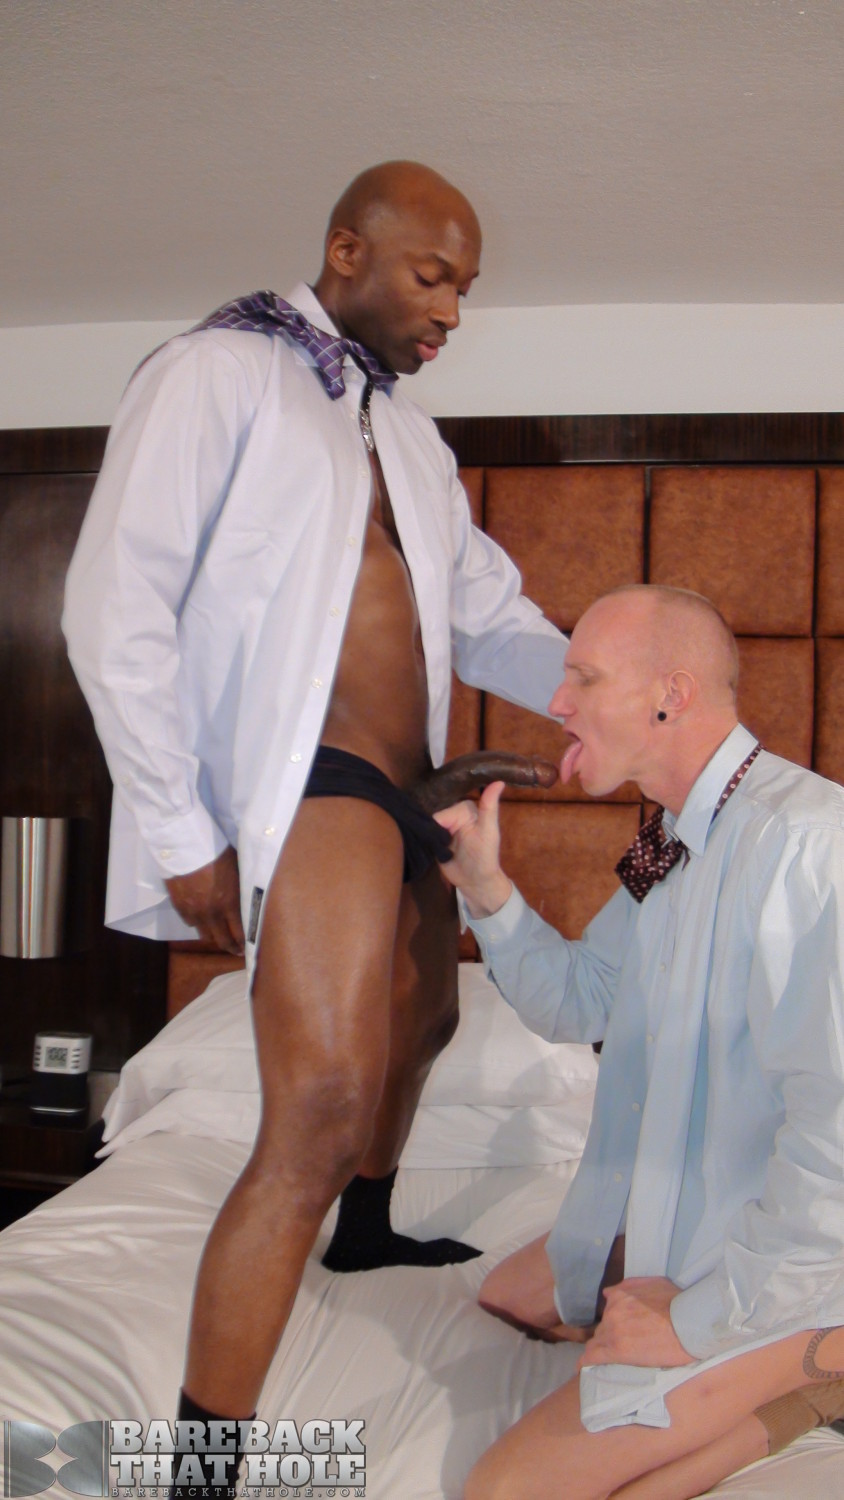 Bareback That Hole Champ Robinson and Mason Garet Interracial Big Black Cock Bareback Amateur Gay Porn 09 Black Corporate Executive Barebacks His White Co Worker